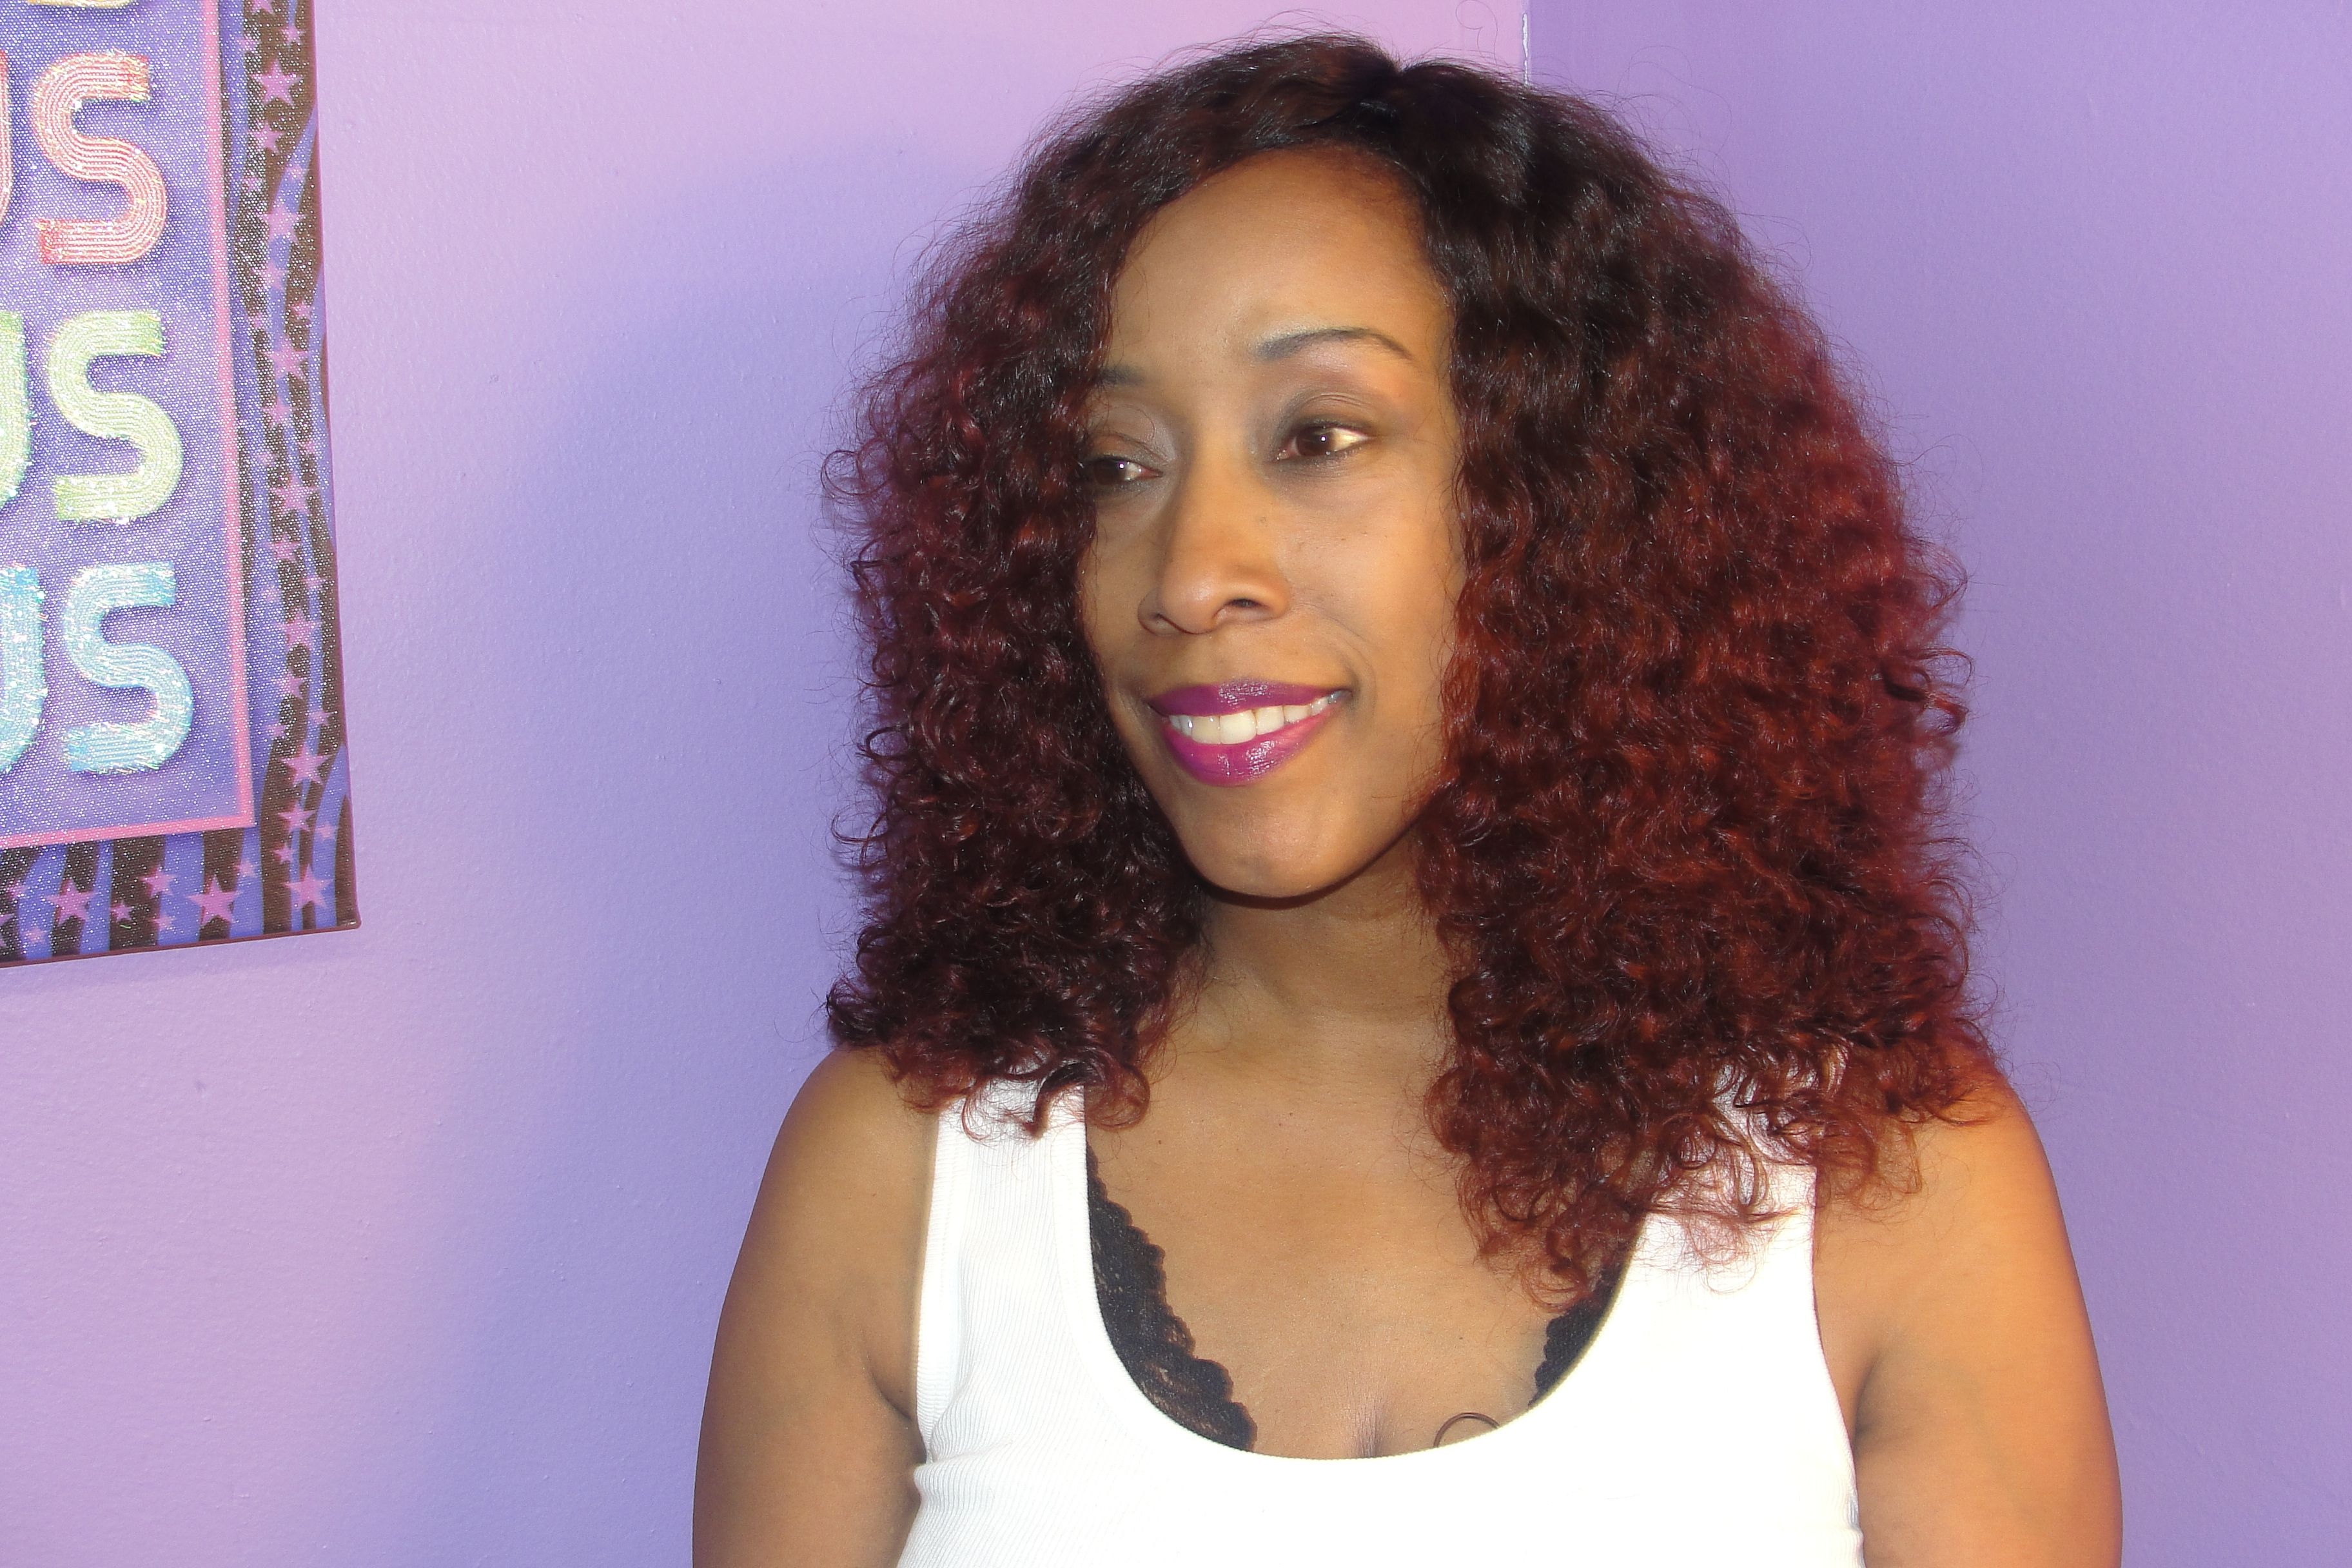 Curly Hair Sew In By Msjudith Of Fabulous Hair And Weave Salon